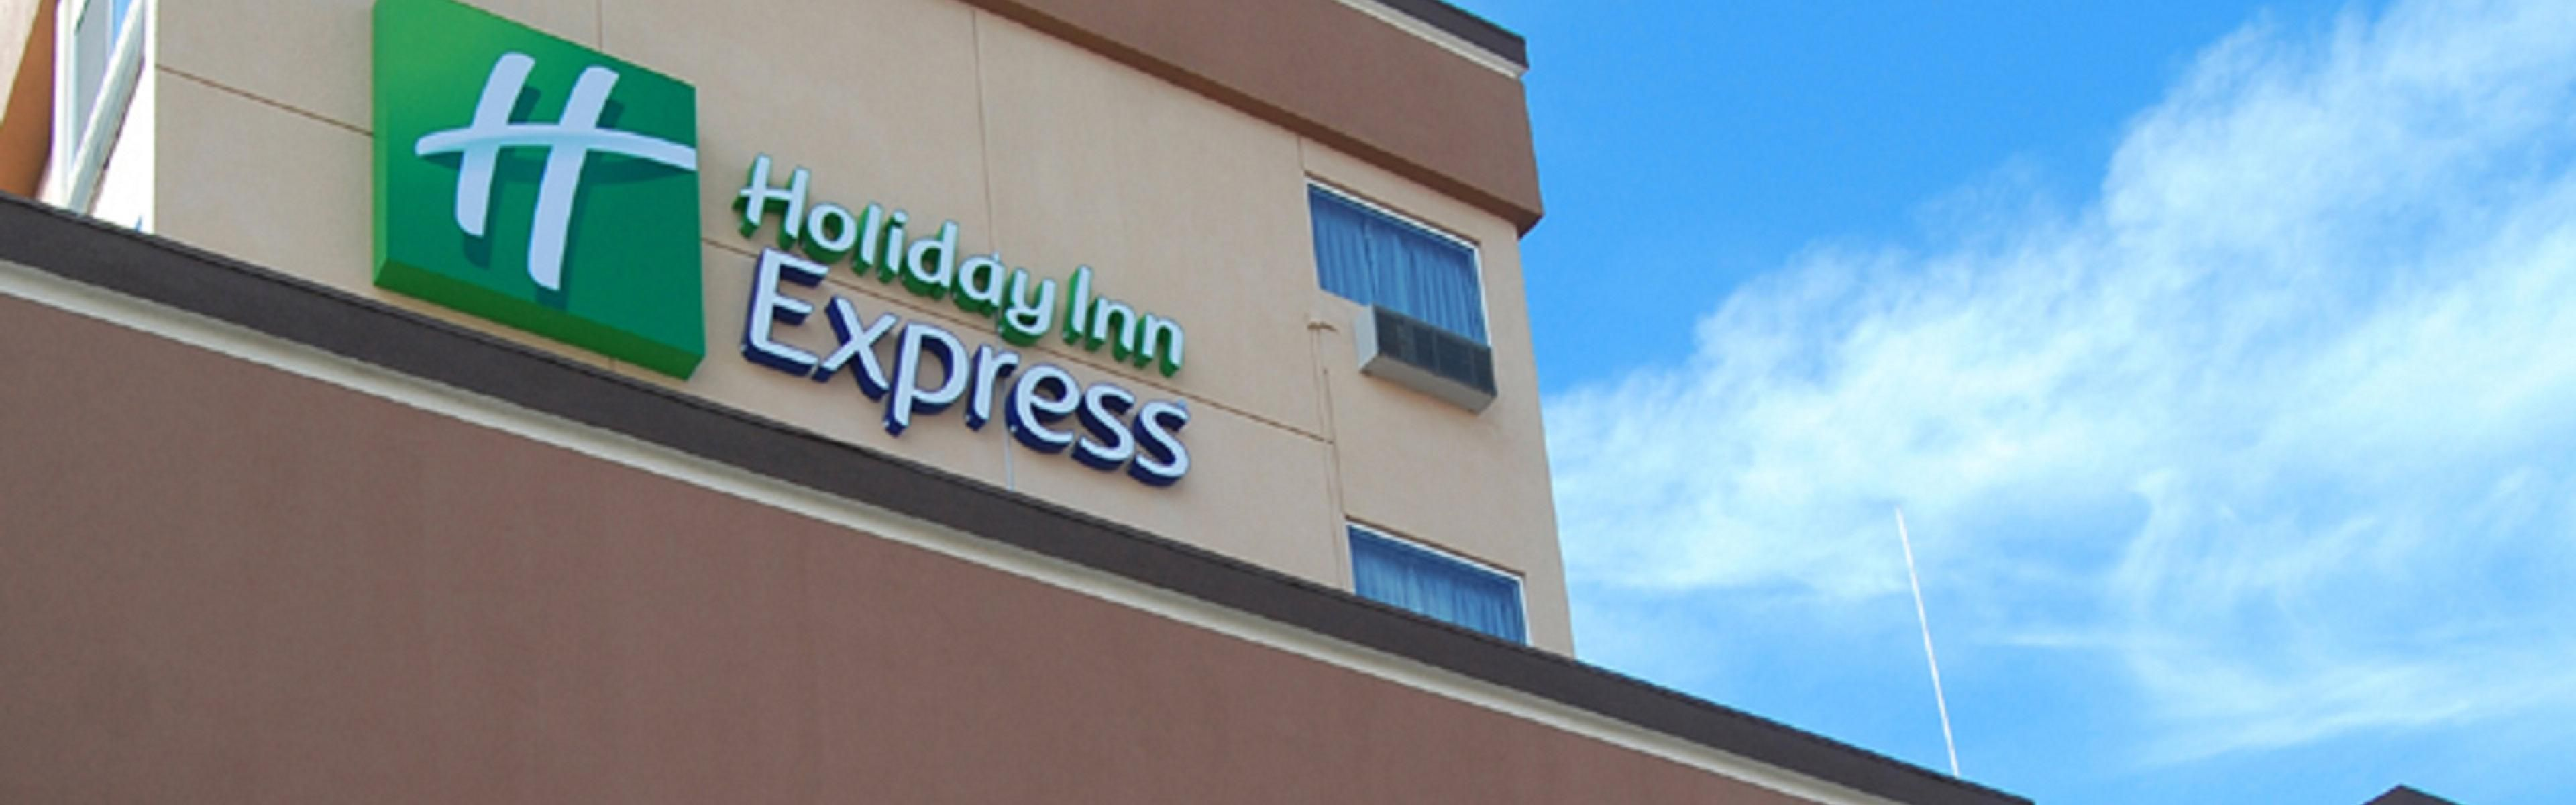 Holiday Inn Express & Suites Los Angeles Downtown West image 0